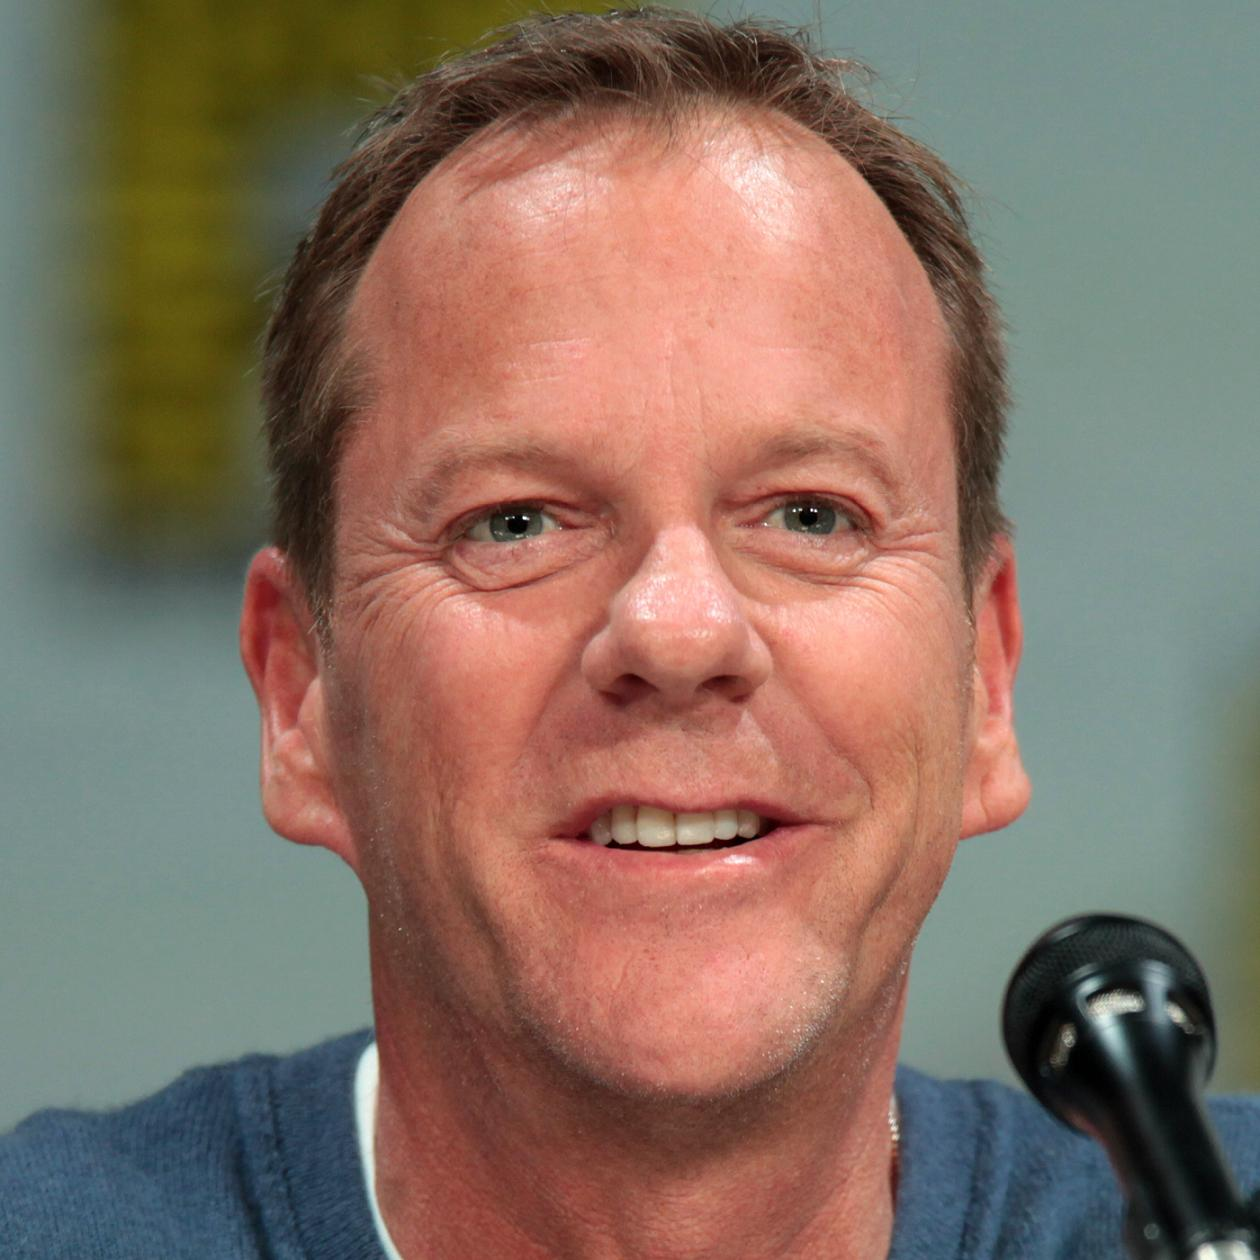 Kiefer Sutherland Bio, Net Worth, Facts